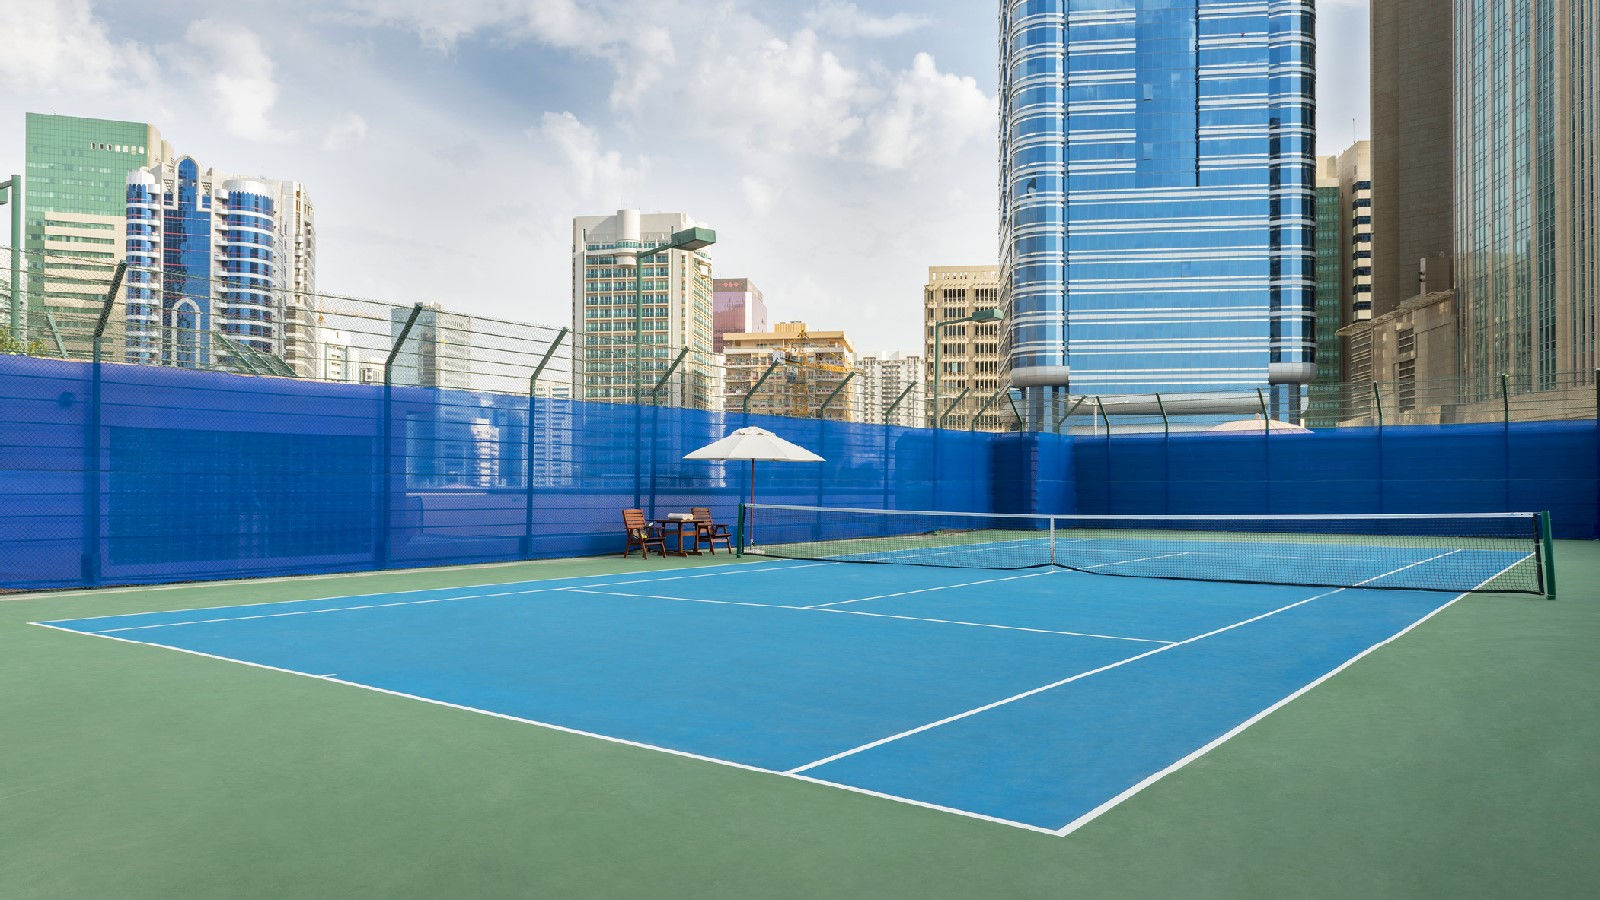 Outdoor tennis court at Sheraton Abu Dhabit Hotel & Resort